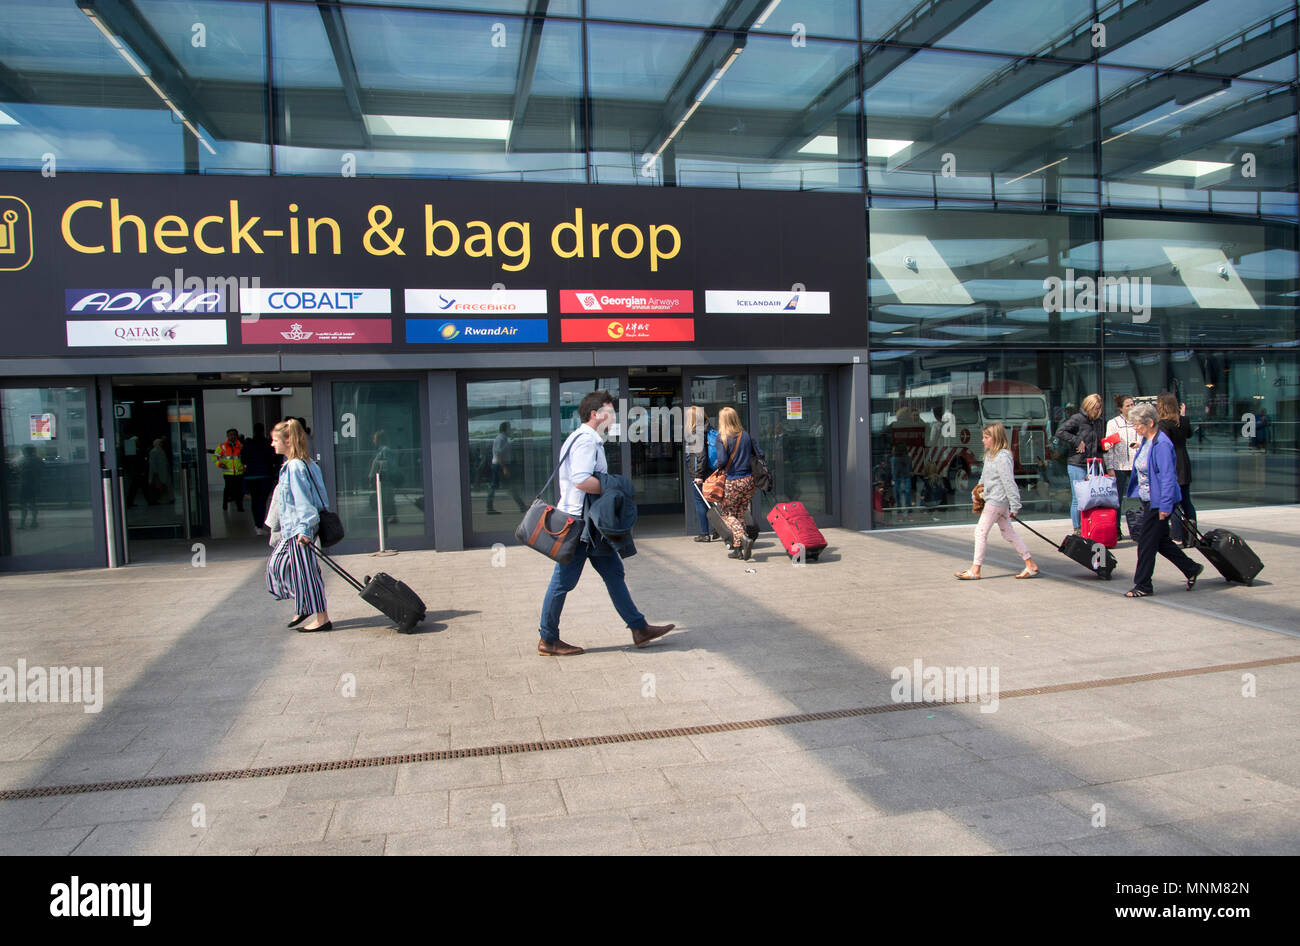 Gatwick airport , Sussex, England. North Terminal. Check-in and bag drop. - Stock Image